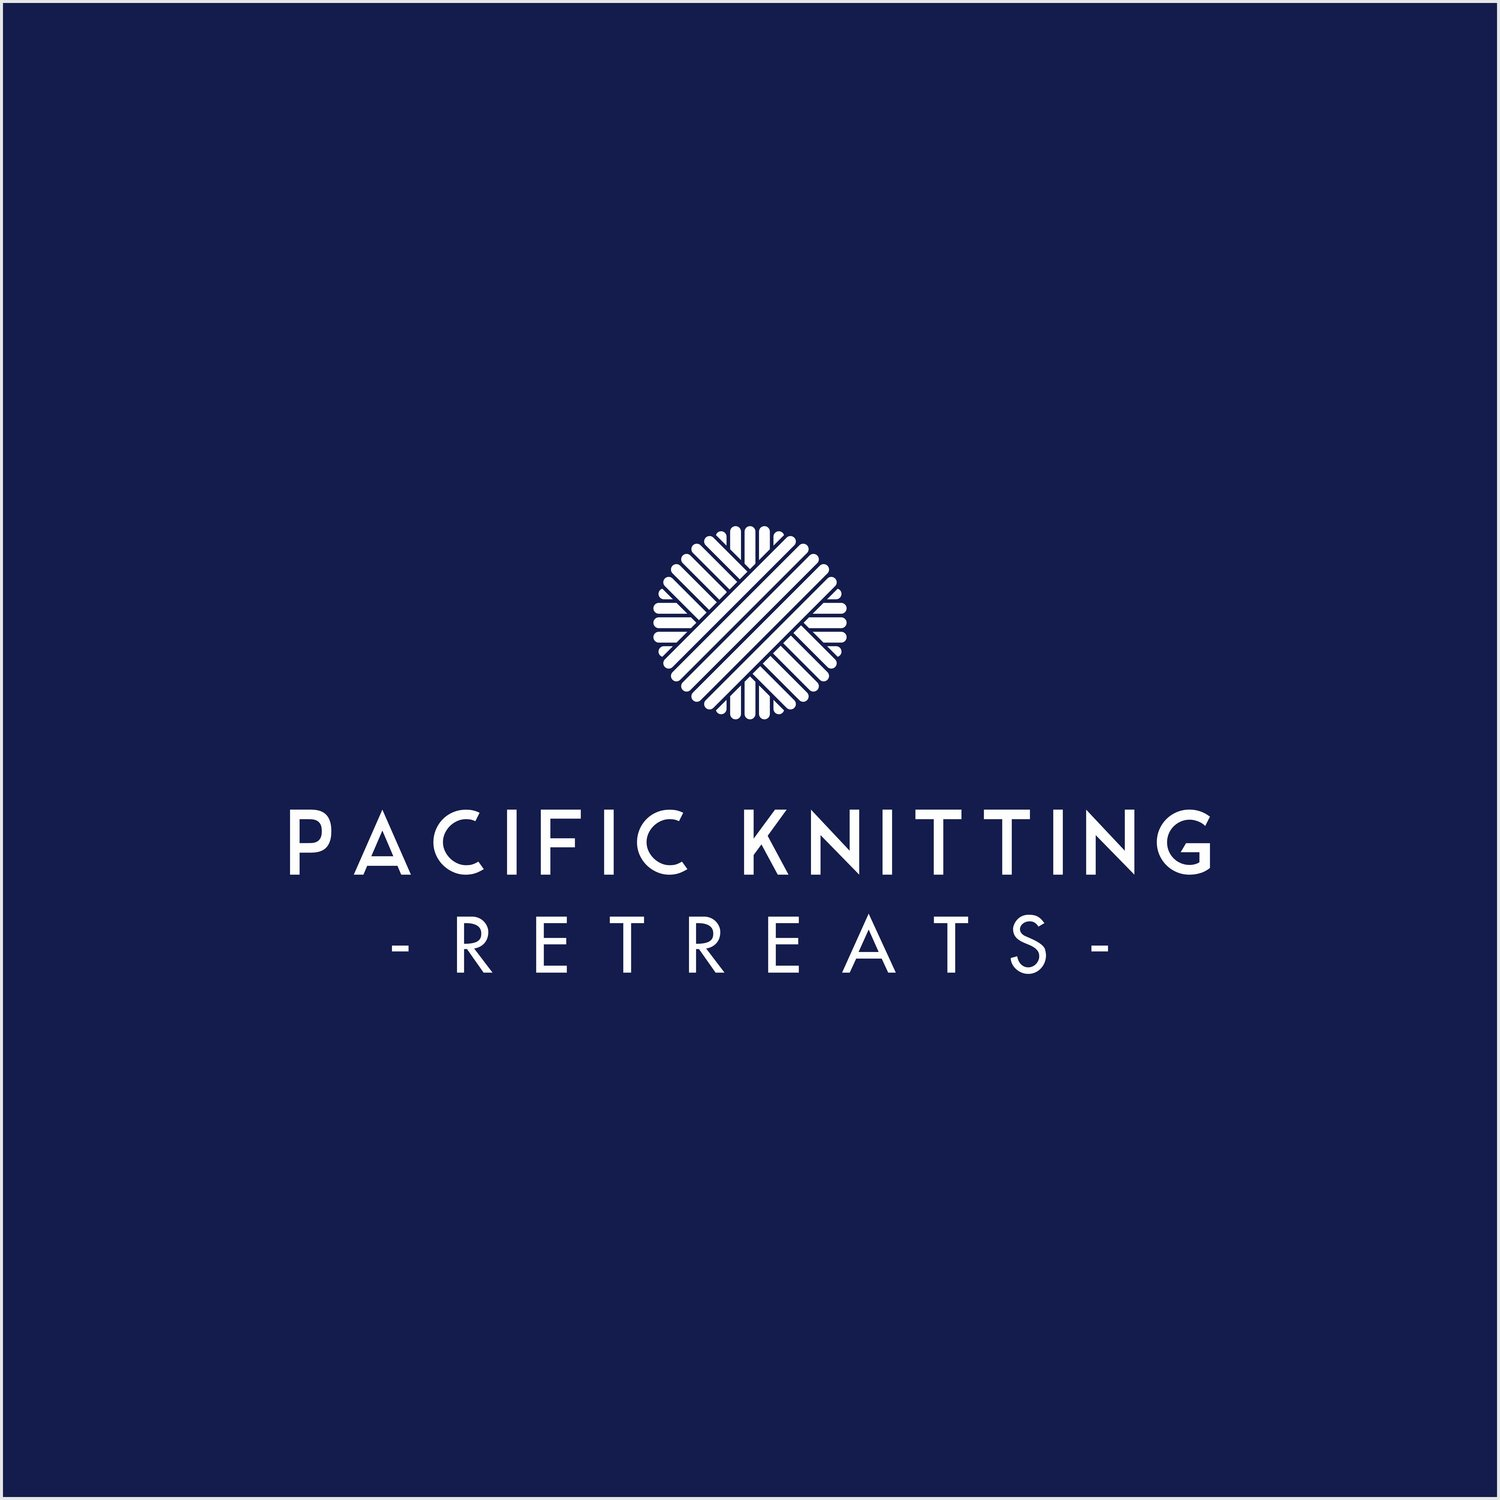 Pacific Knitting Retreats